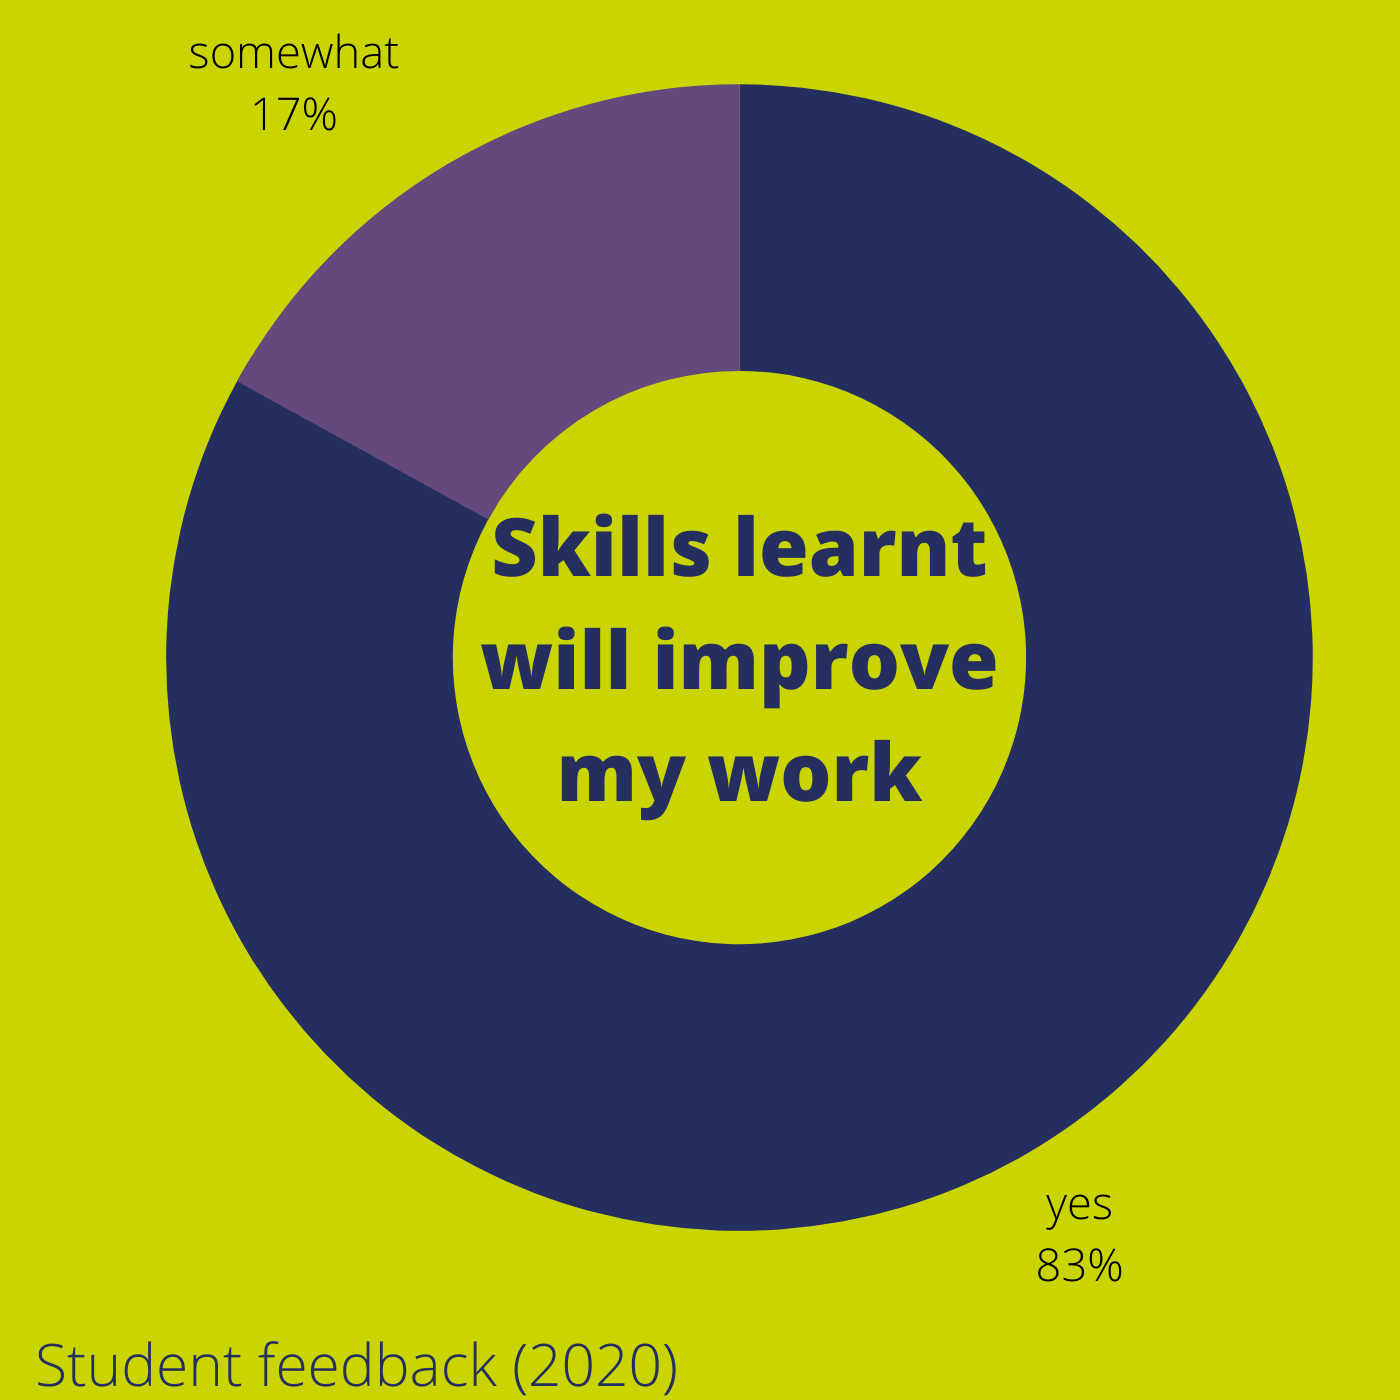 student feedback 2020 - 83% felt that the skills learnt would improve their work